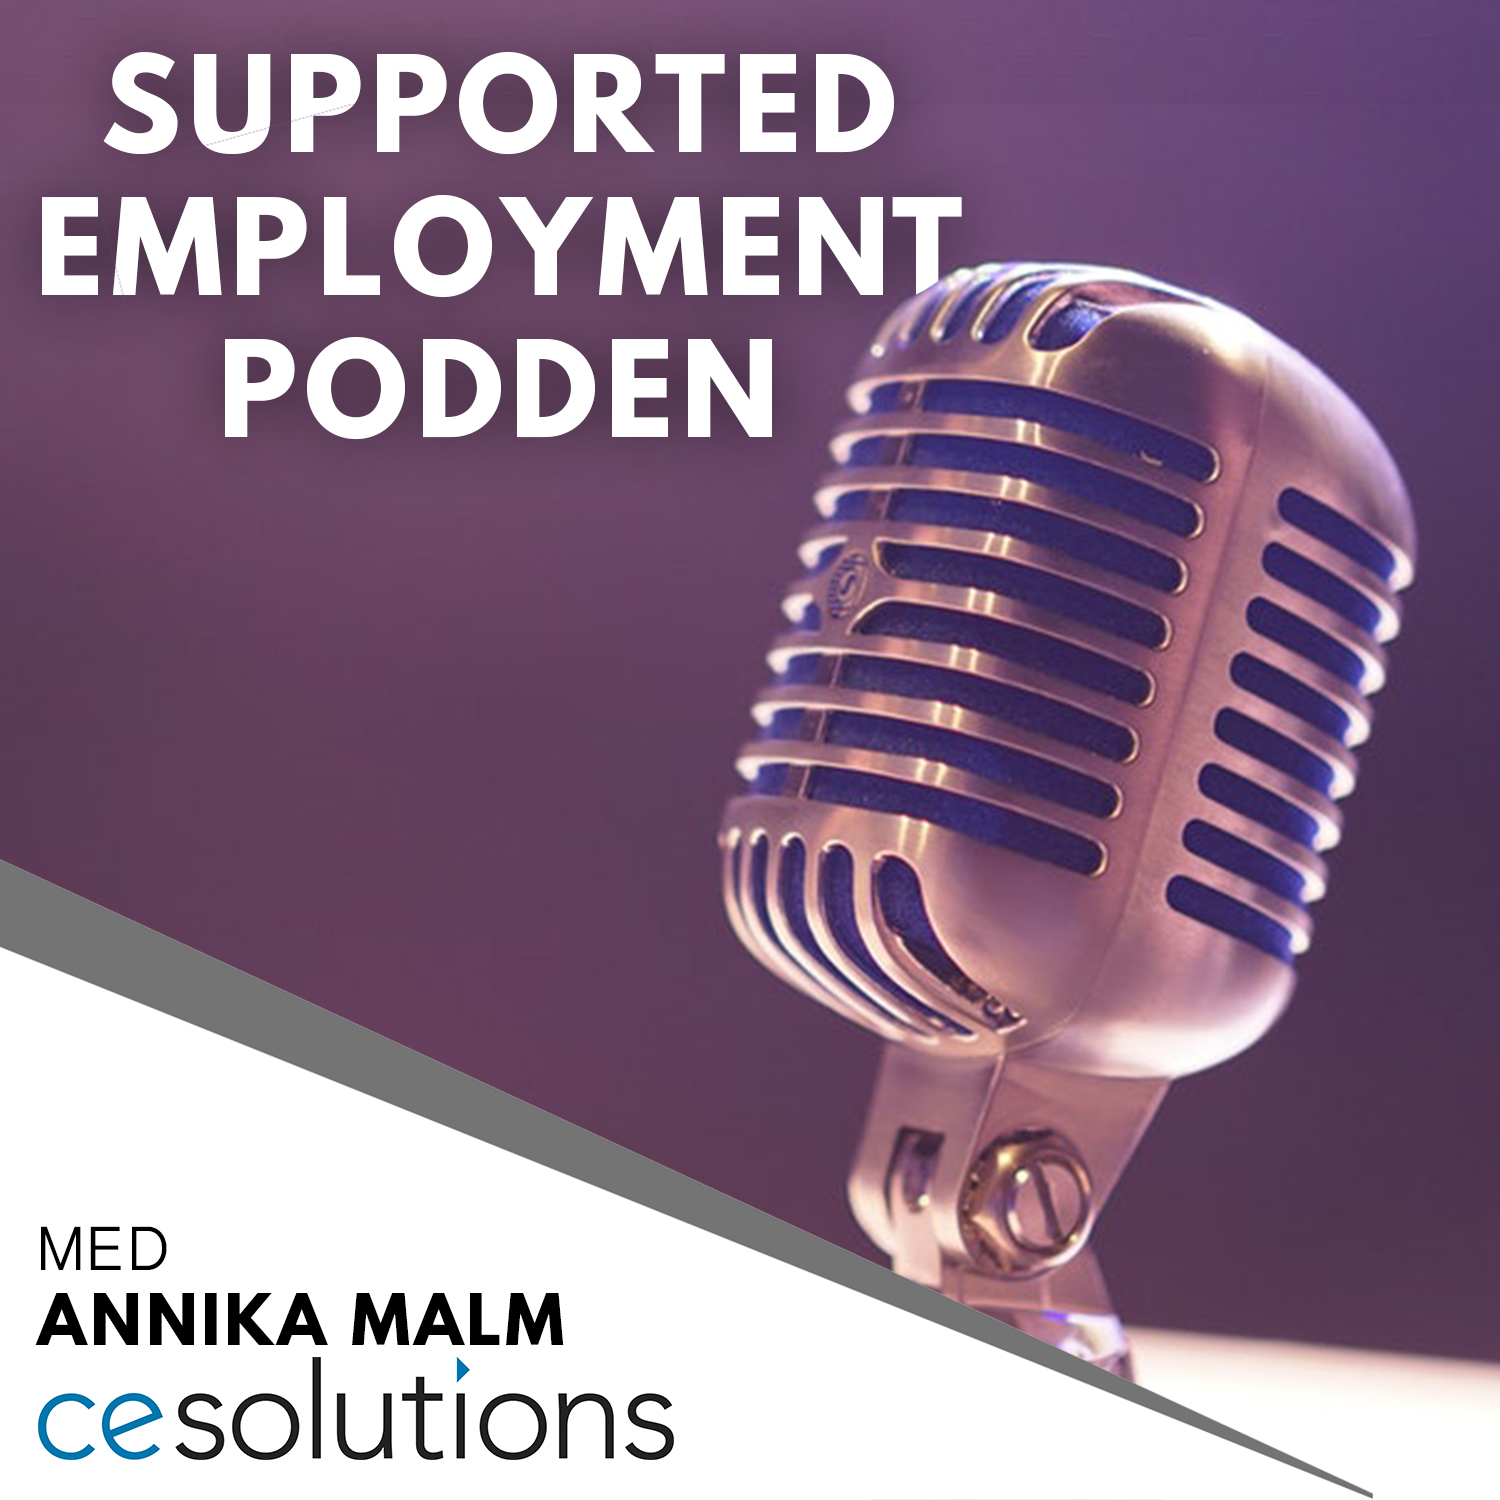 Intro - Supported Employment podden